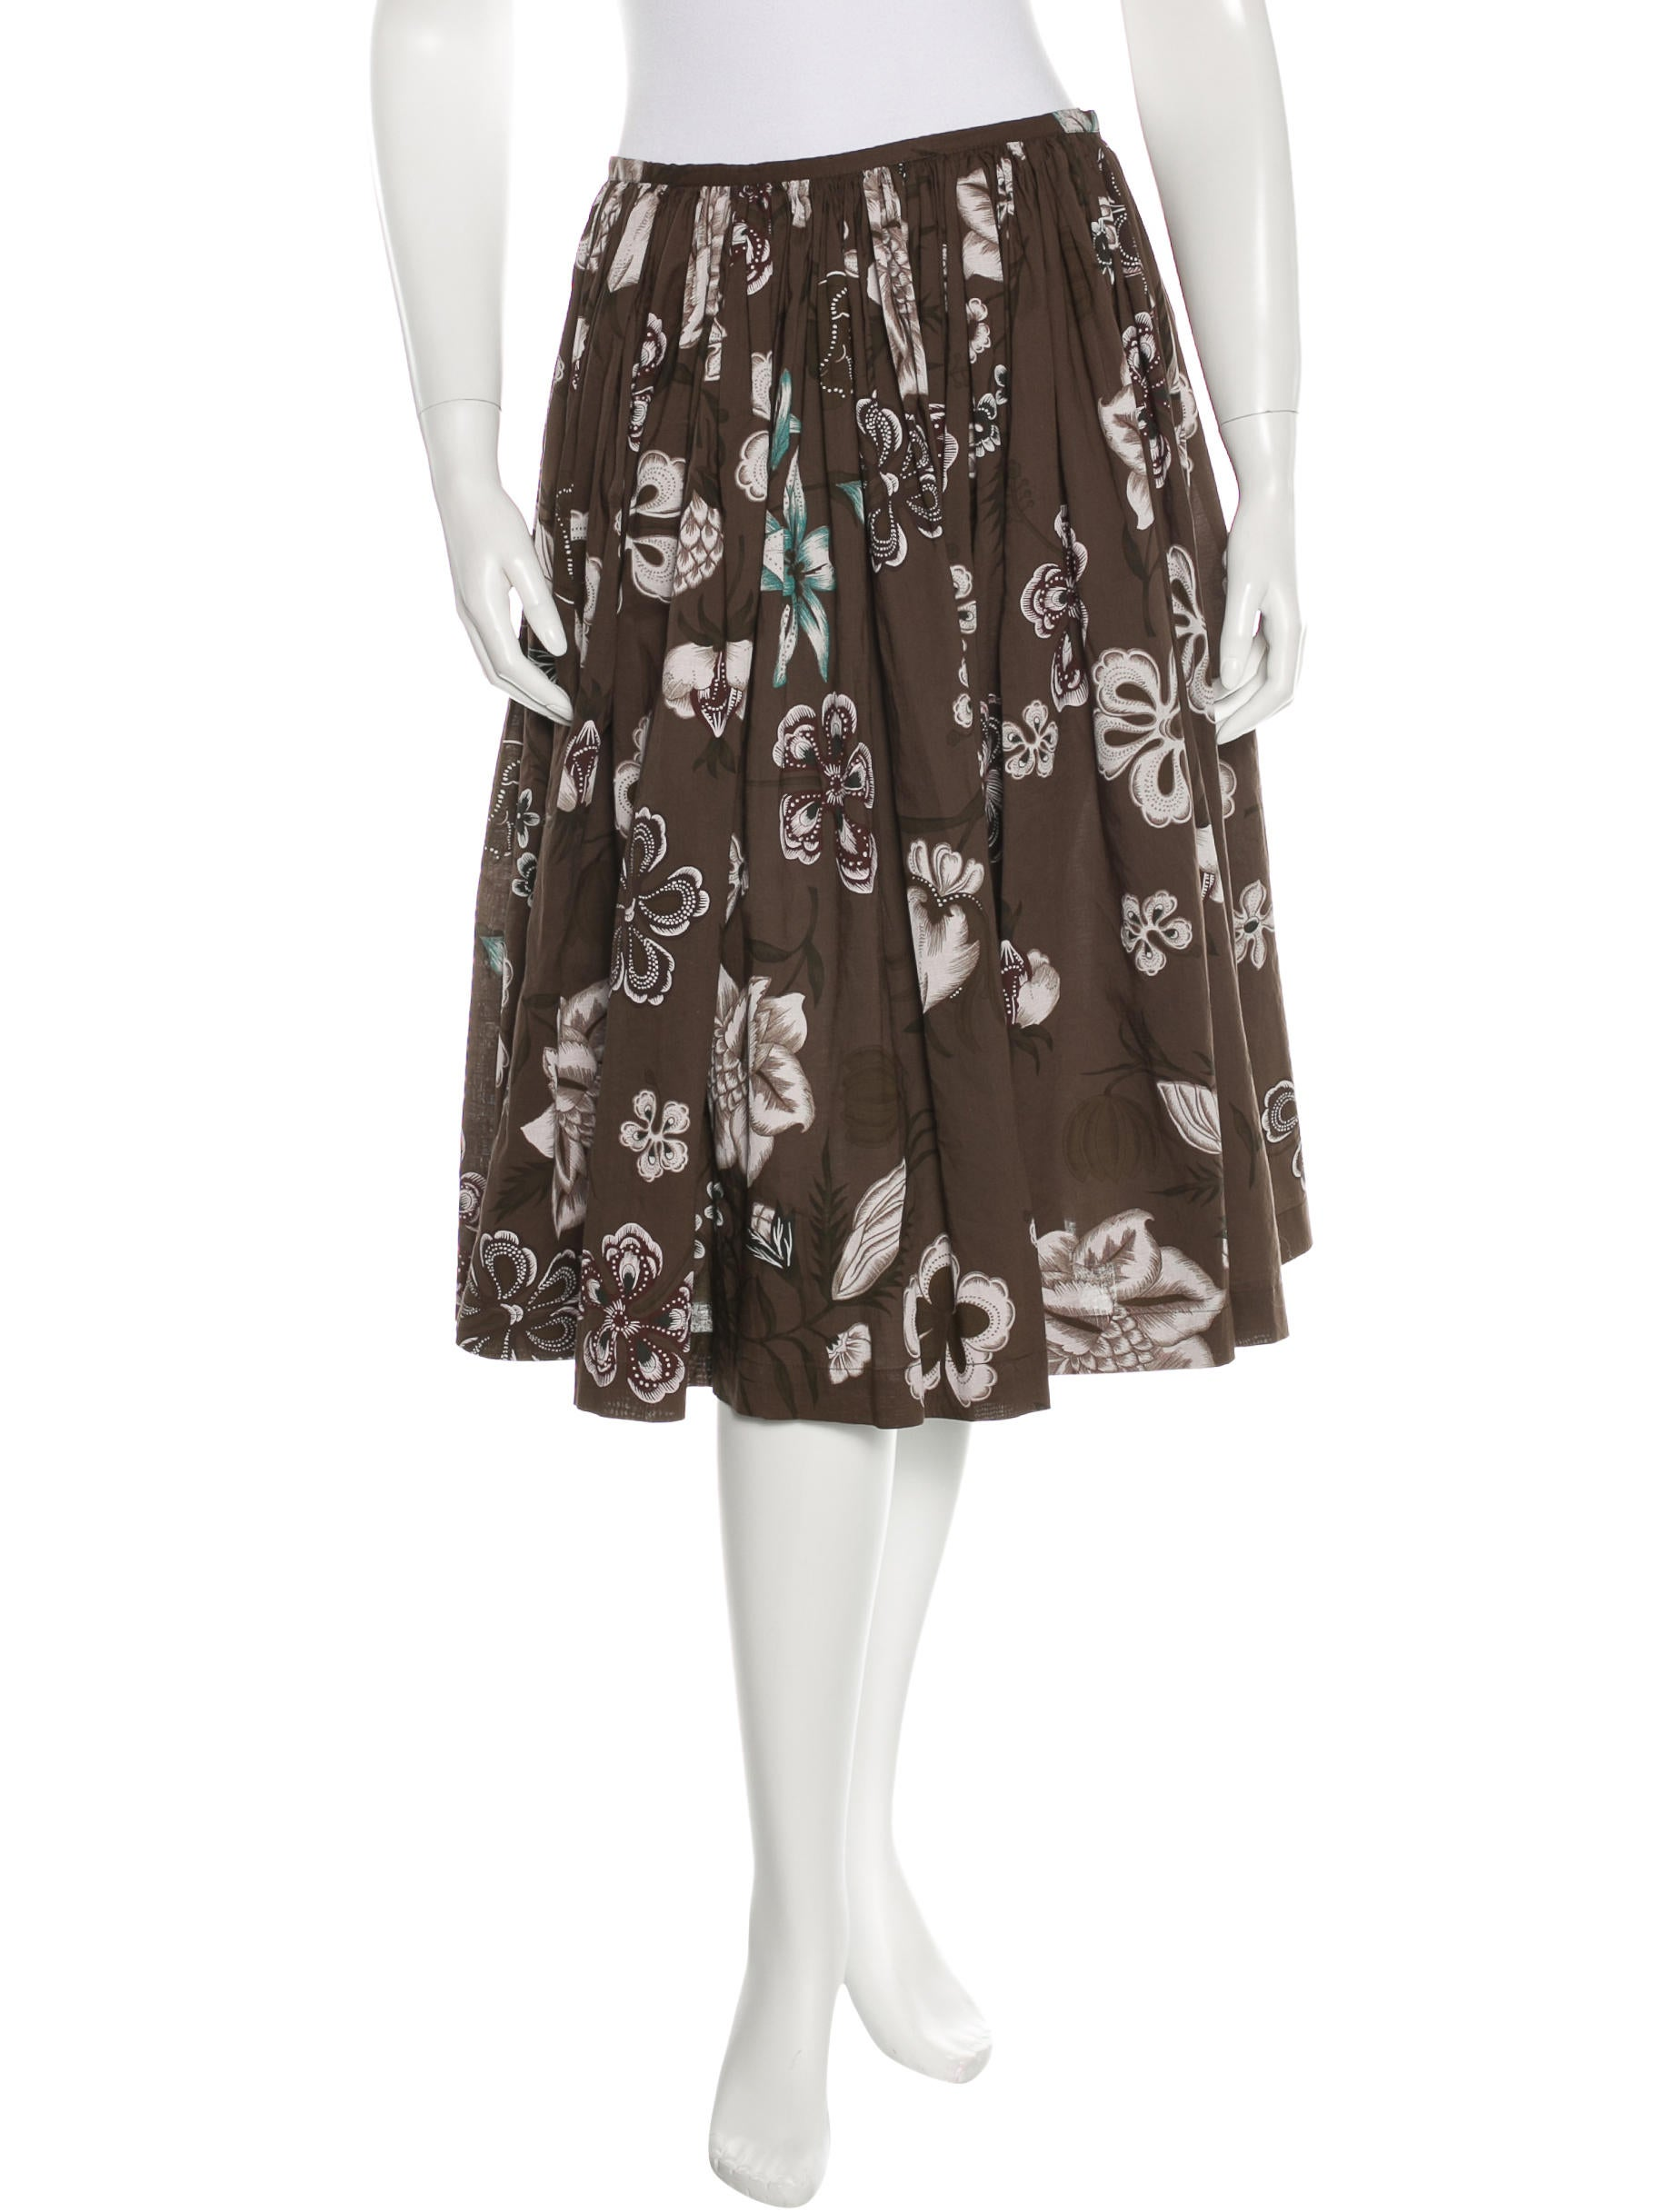 dries noten floral print knee length skirt clothing